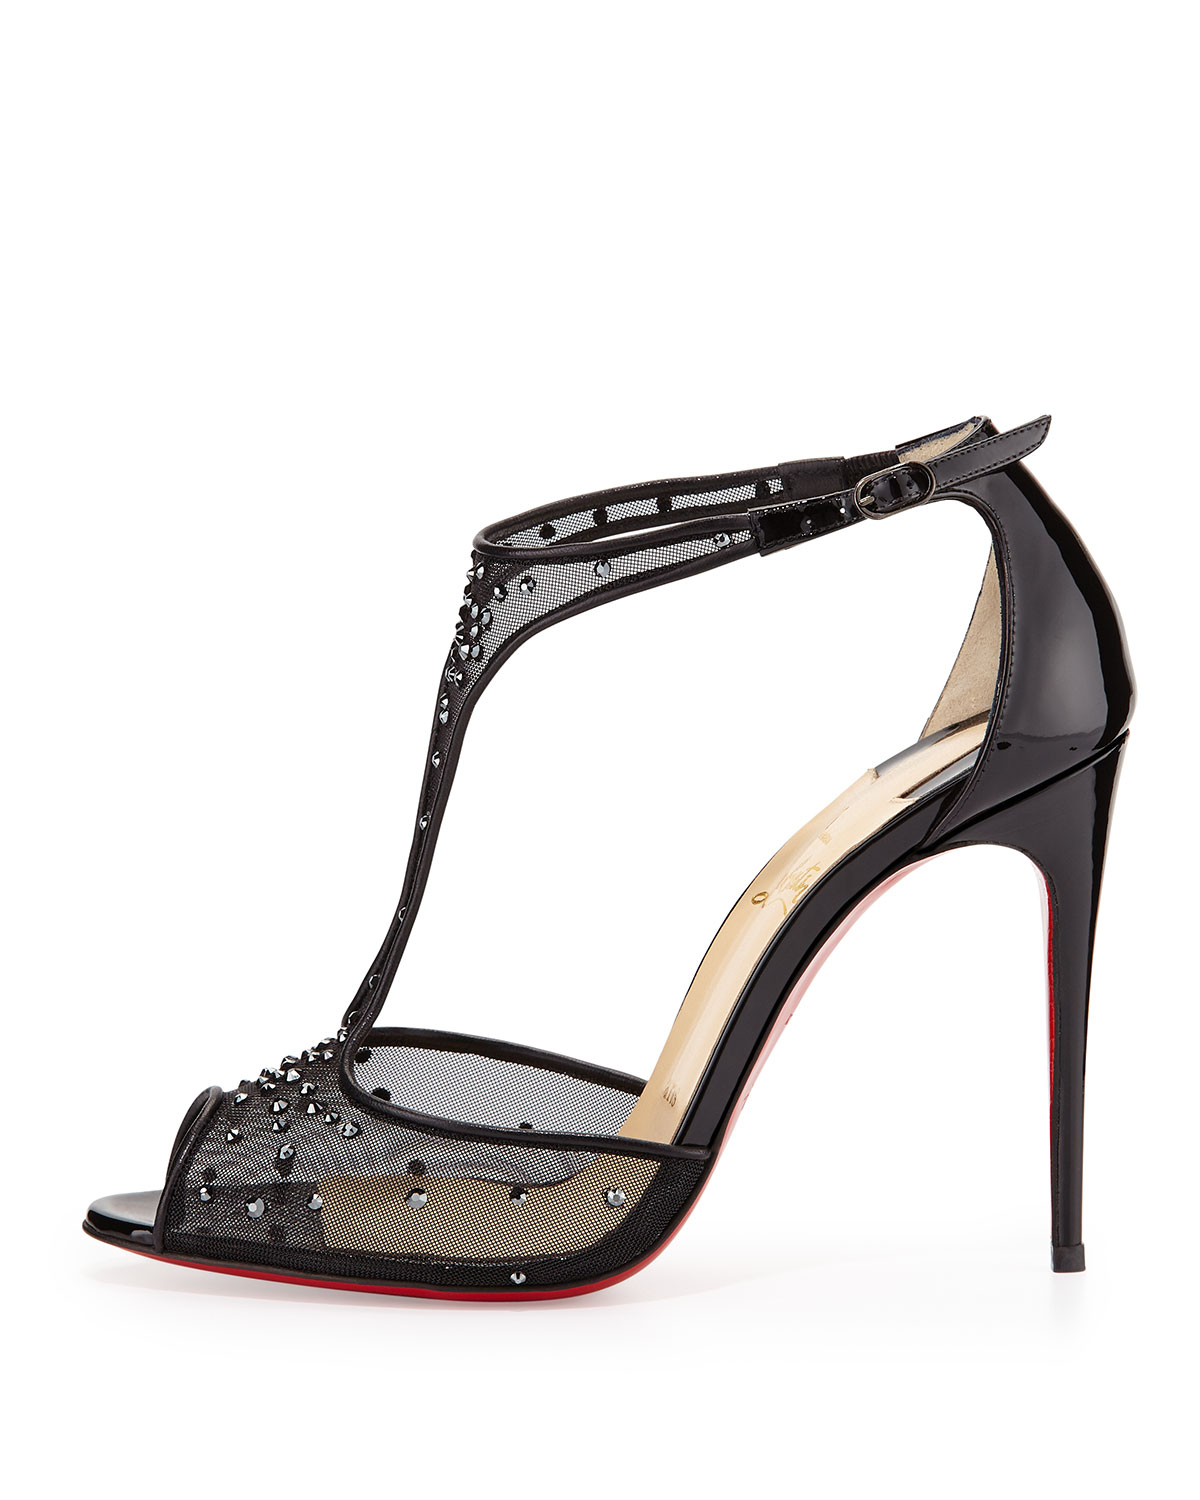 christian louboutins sneakers for men - Christian louboutin Patinana Strass Red Sole Sandal in Black (red ...